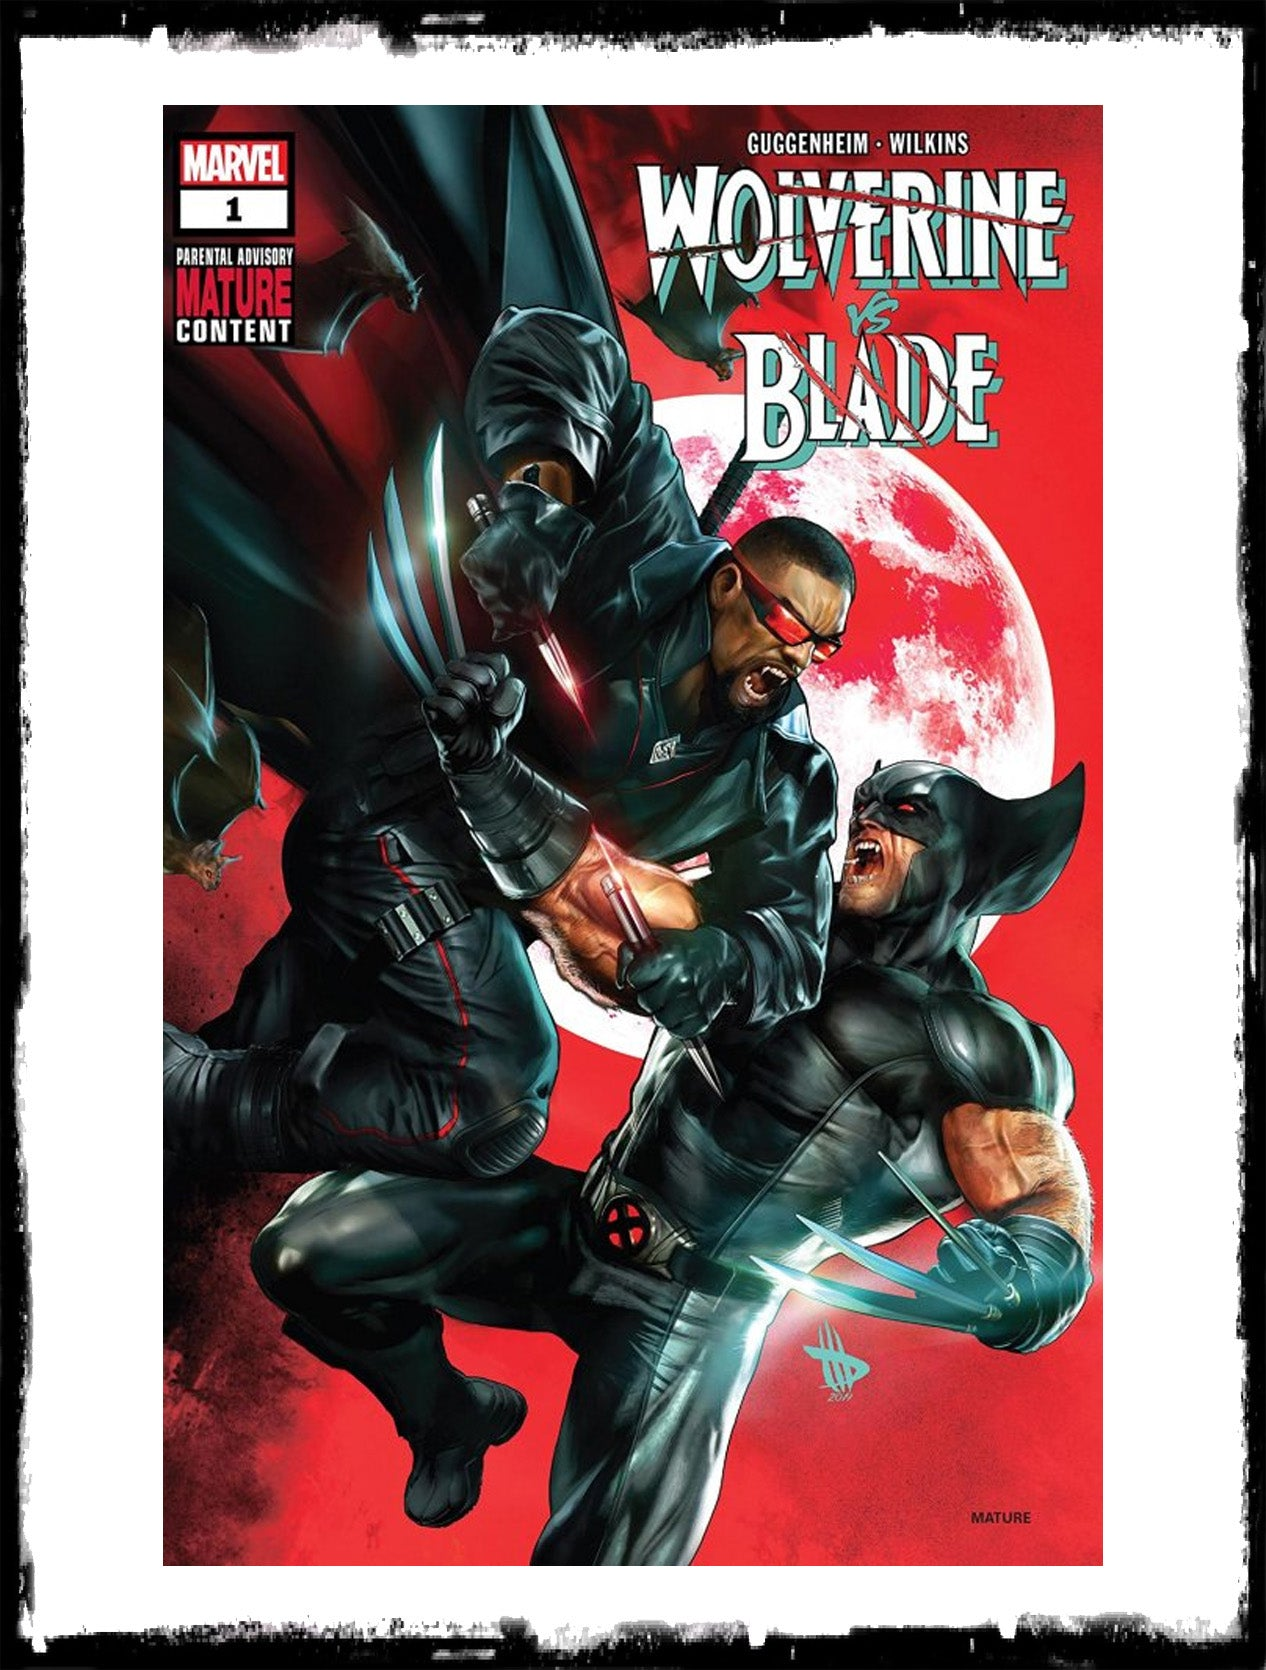 WOLVERINE VS BLADE - #1 DAVE WILKINS TRADE DRESS VARIANT (2019 - NM)